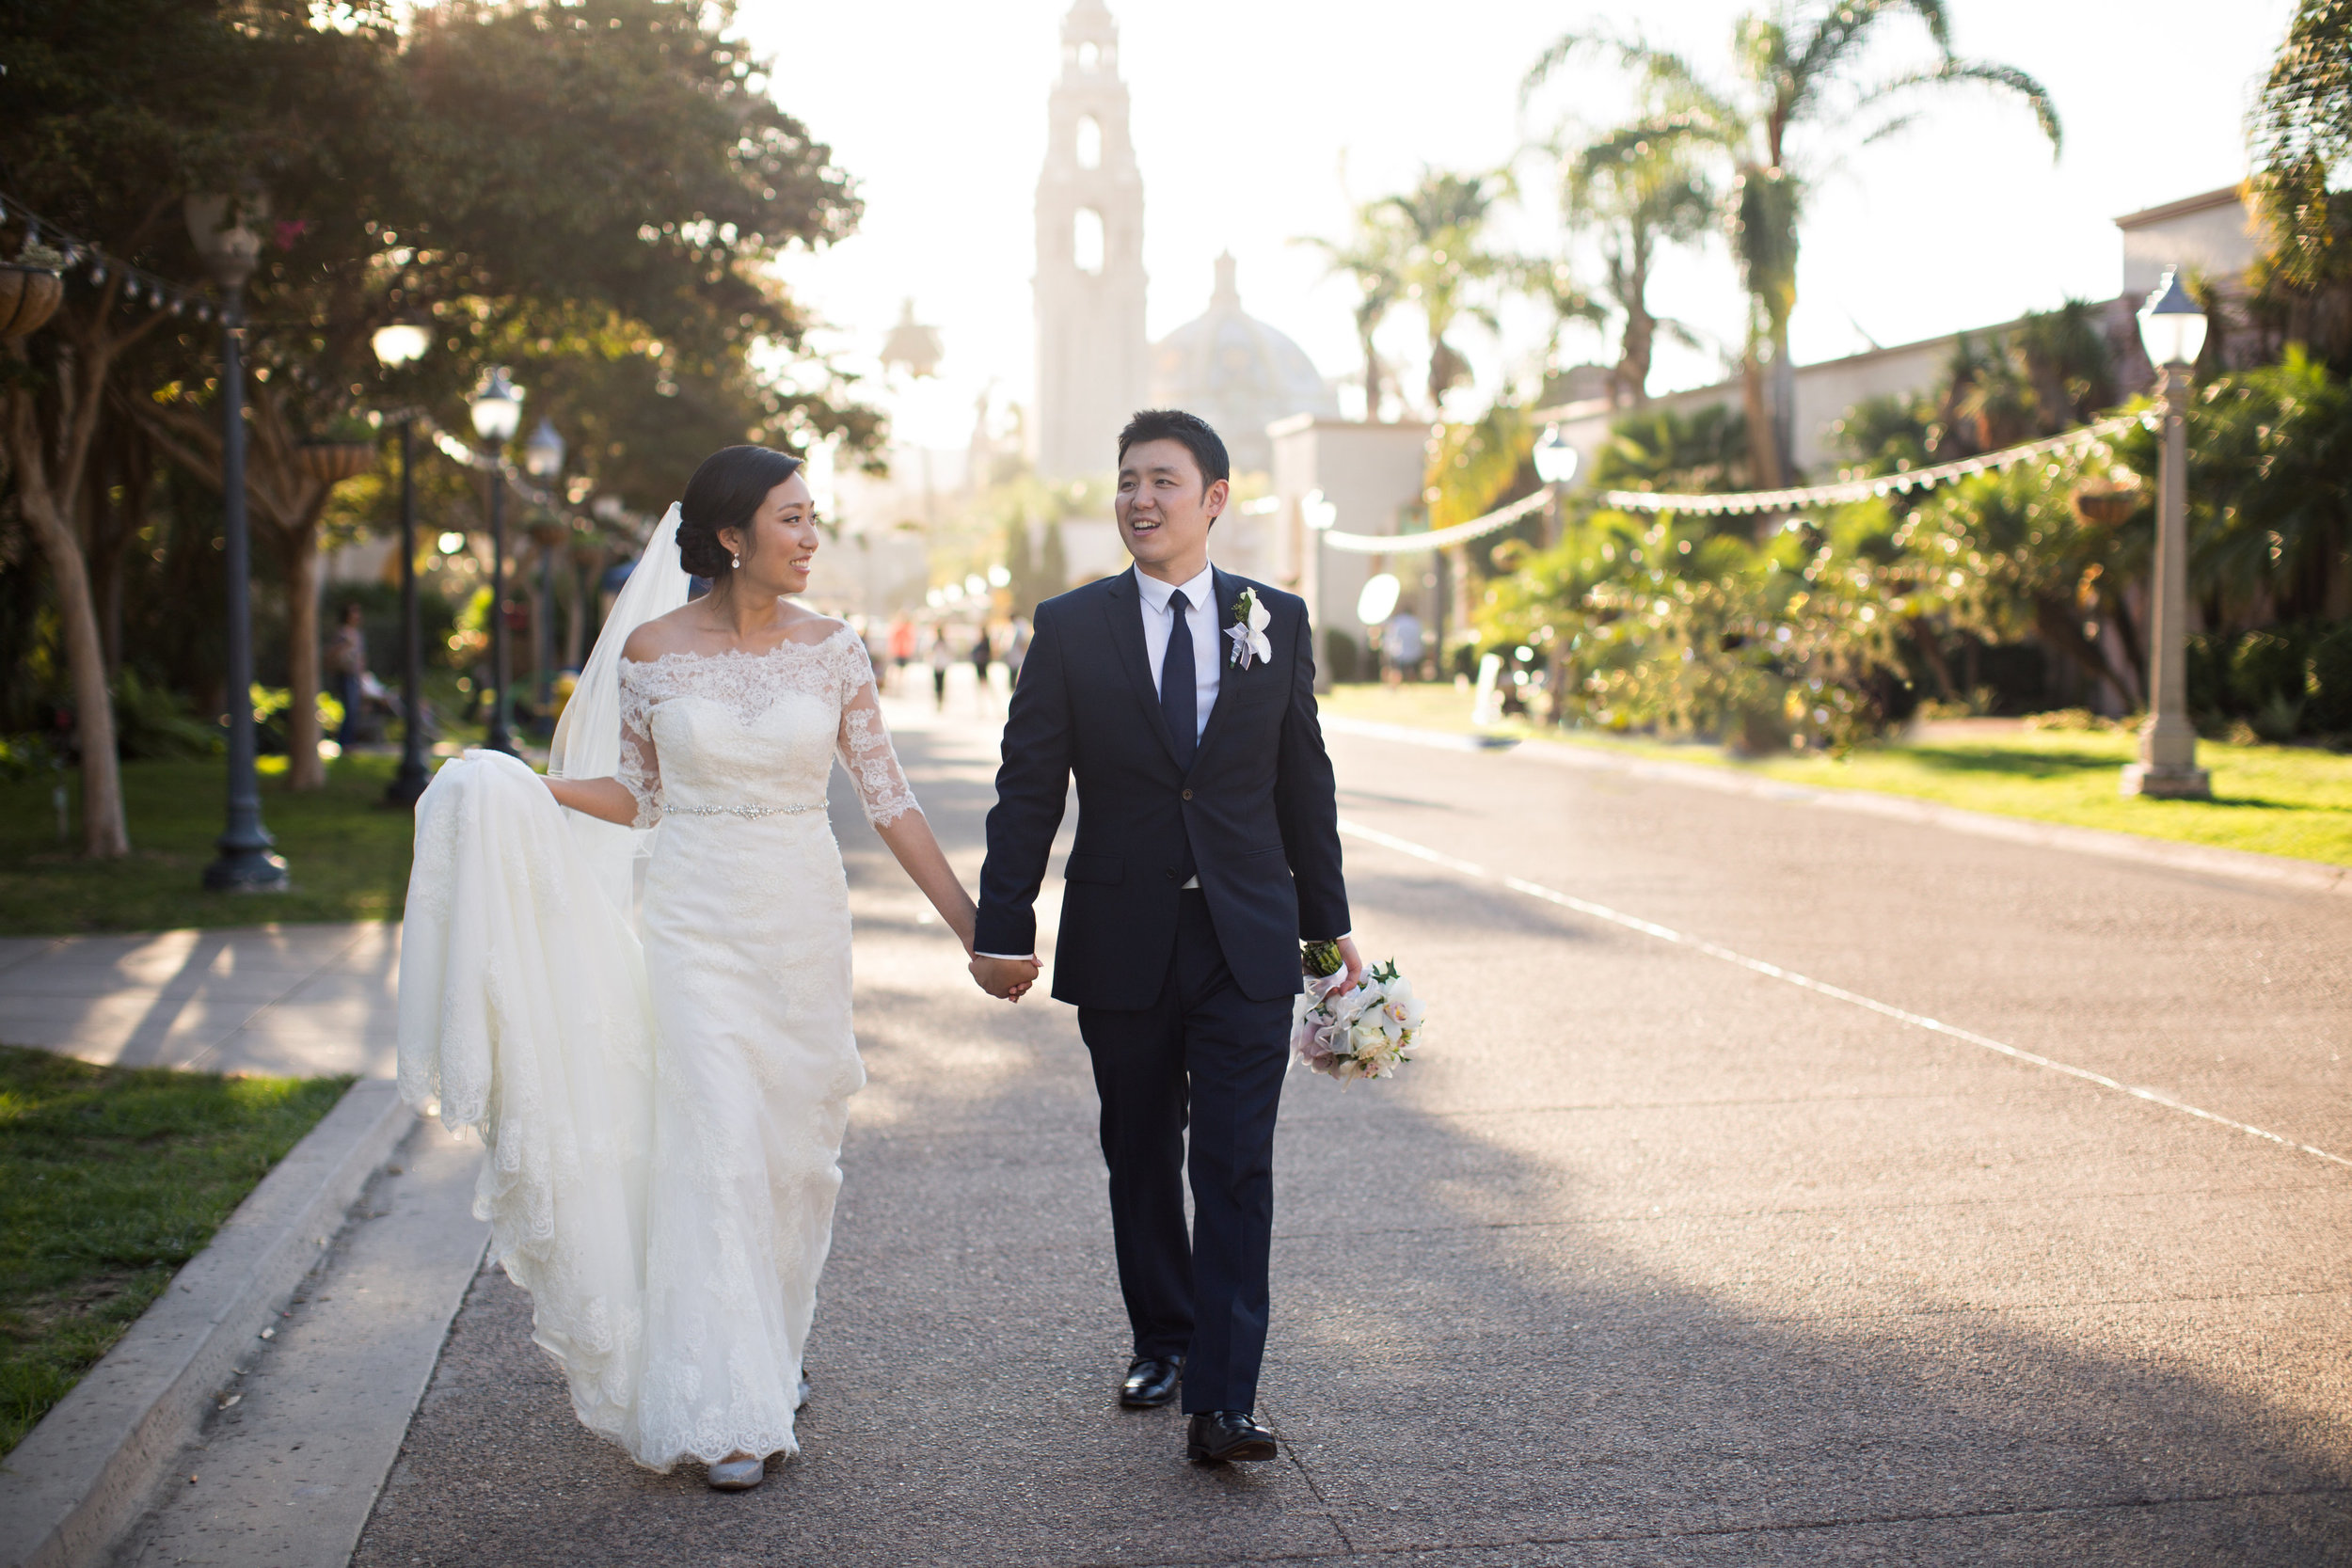 Happily Married at Balboa Park